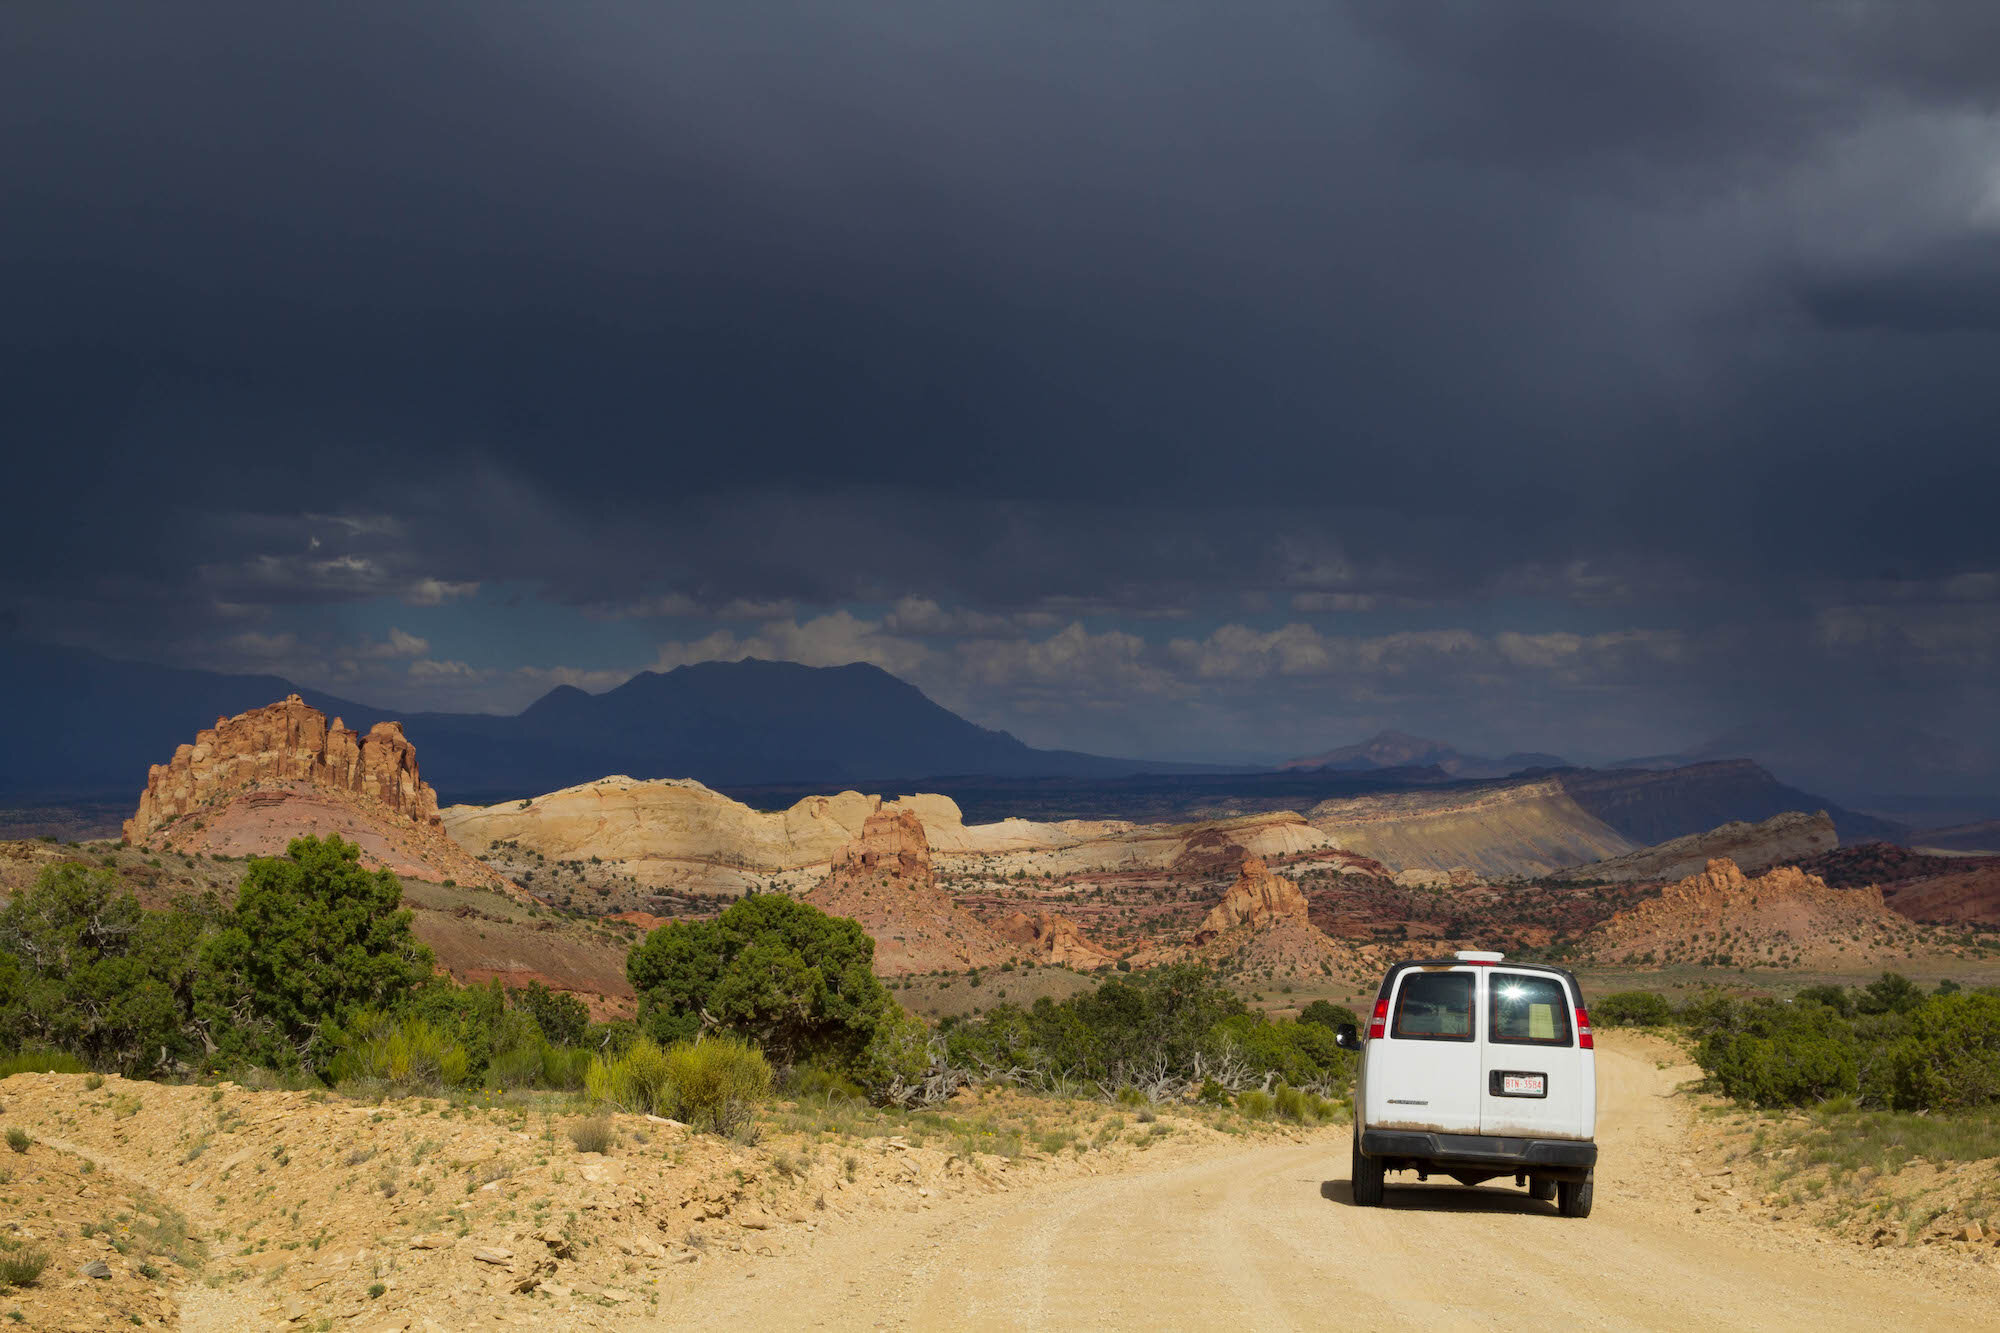 Stormy skies while approaching the Waterpocket Fold on the Burr Trail Road